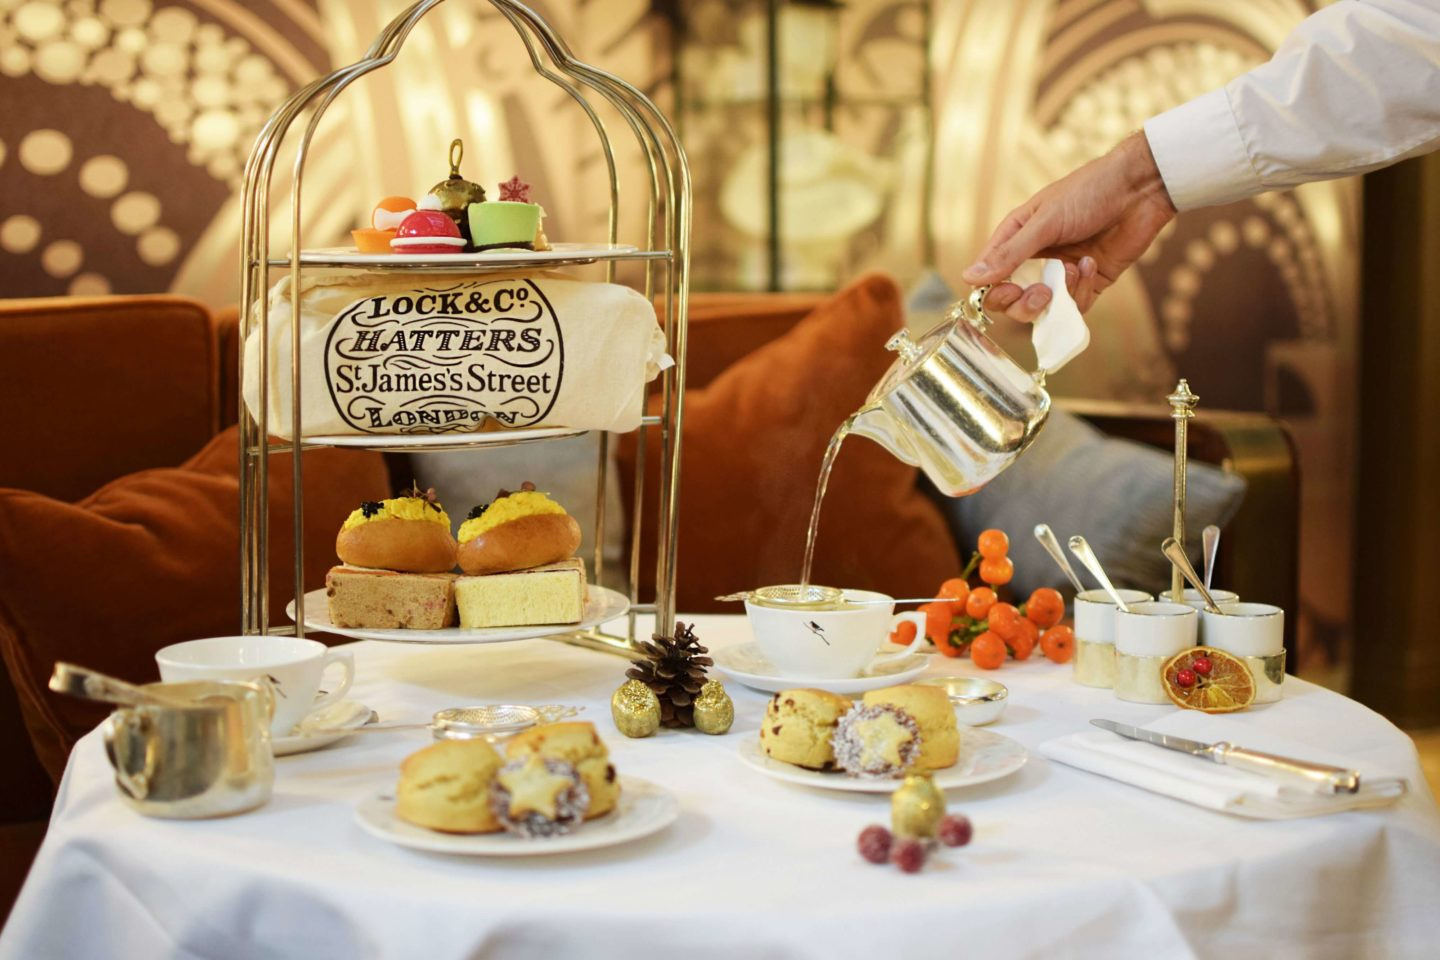 Bottomless Afternoon Tea in London